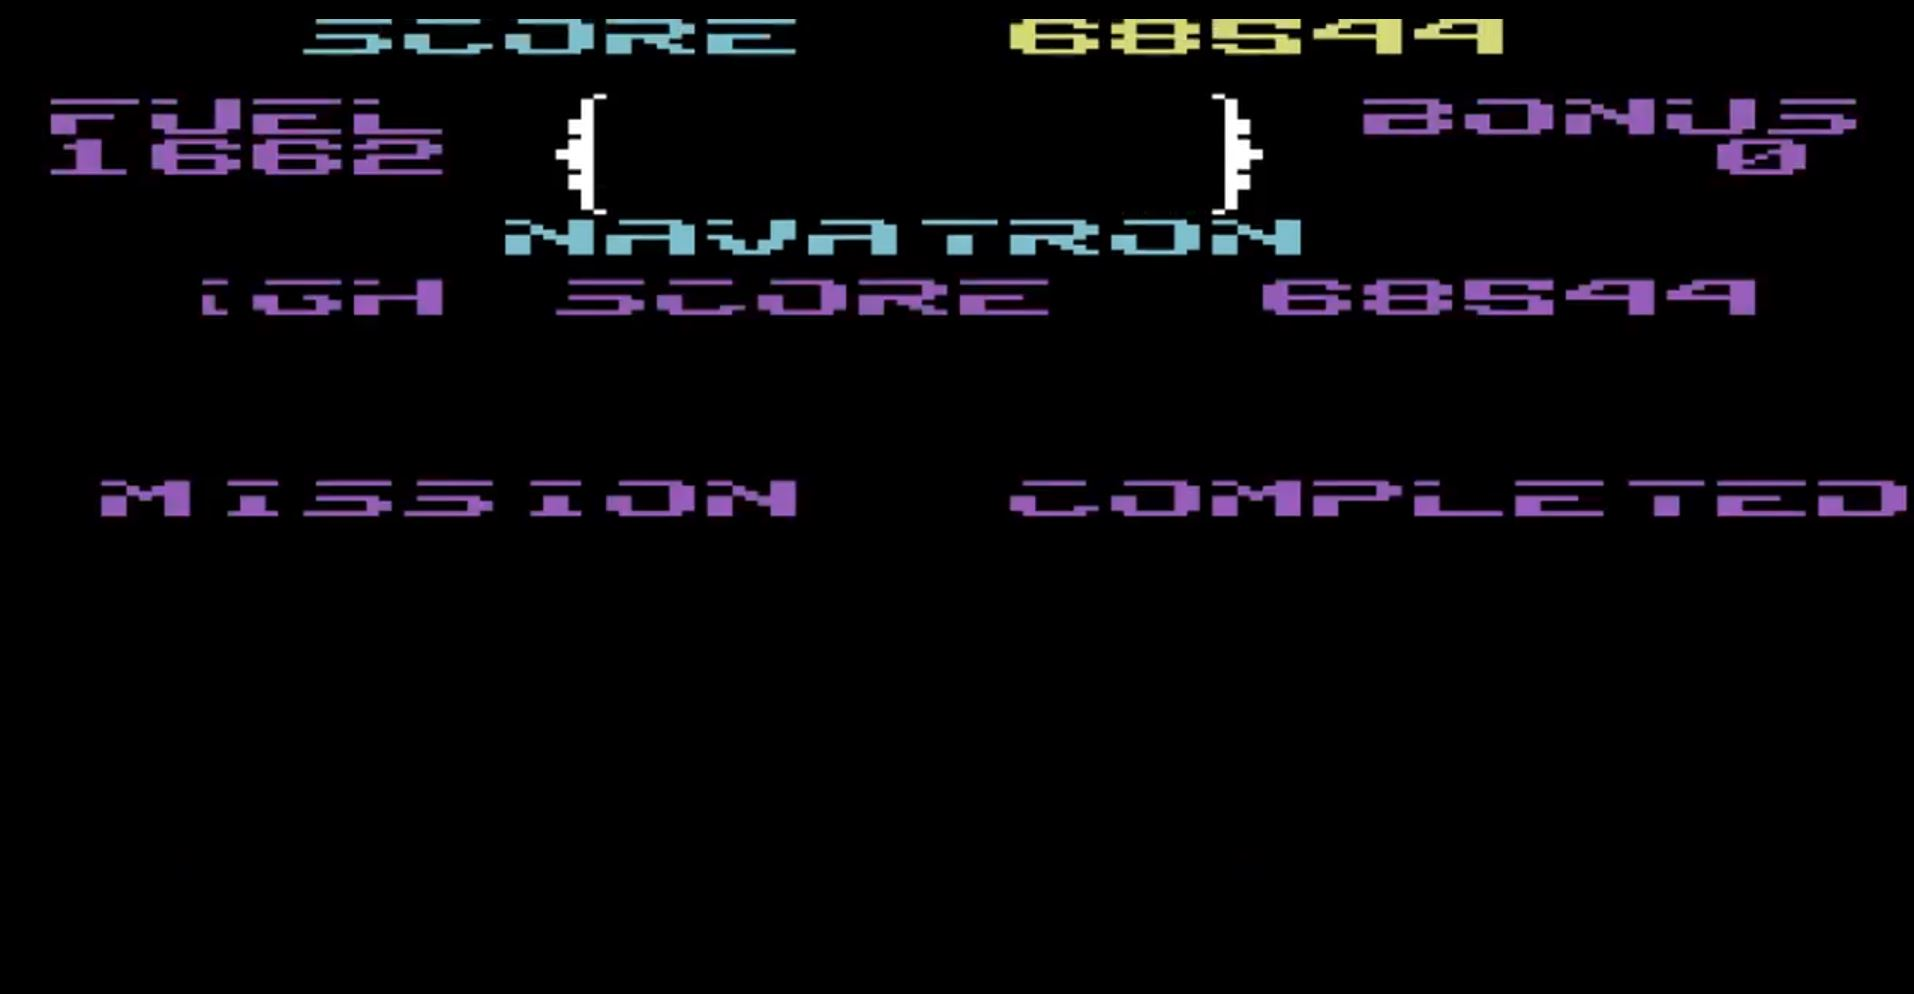 TheTrickster: Fort Apocalypse (Commodore 64 Emulated) 68,544 points on 2017-02-02 04:25:24